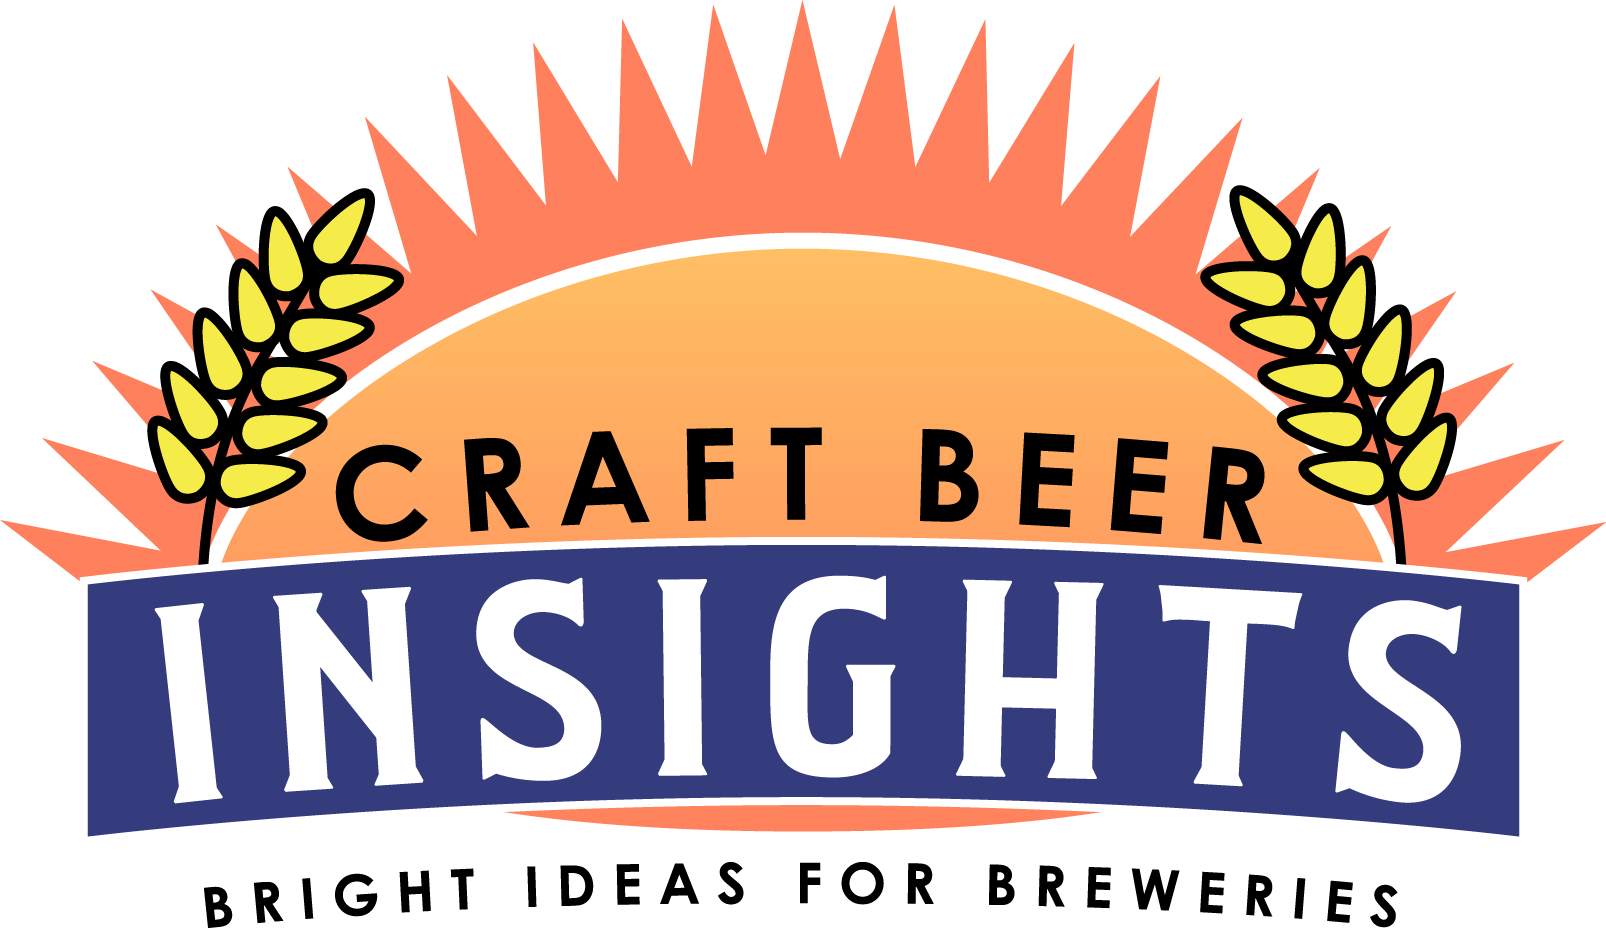 Craft Beer Global Craft Beer Consulting